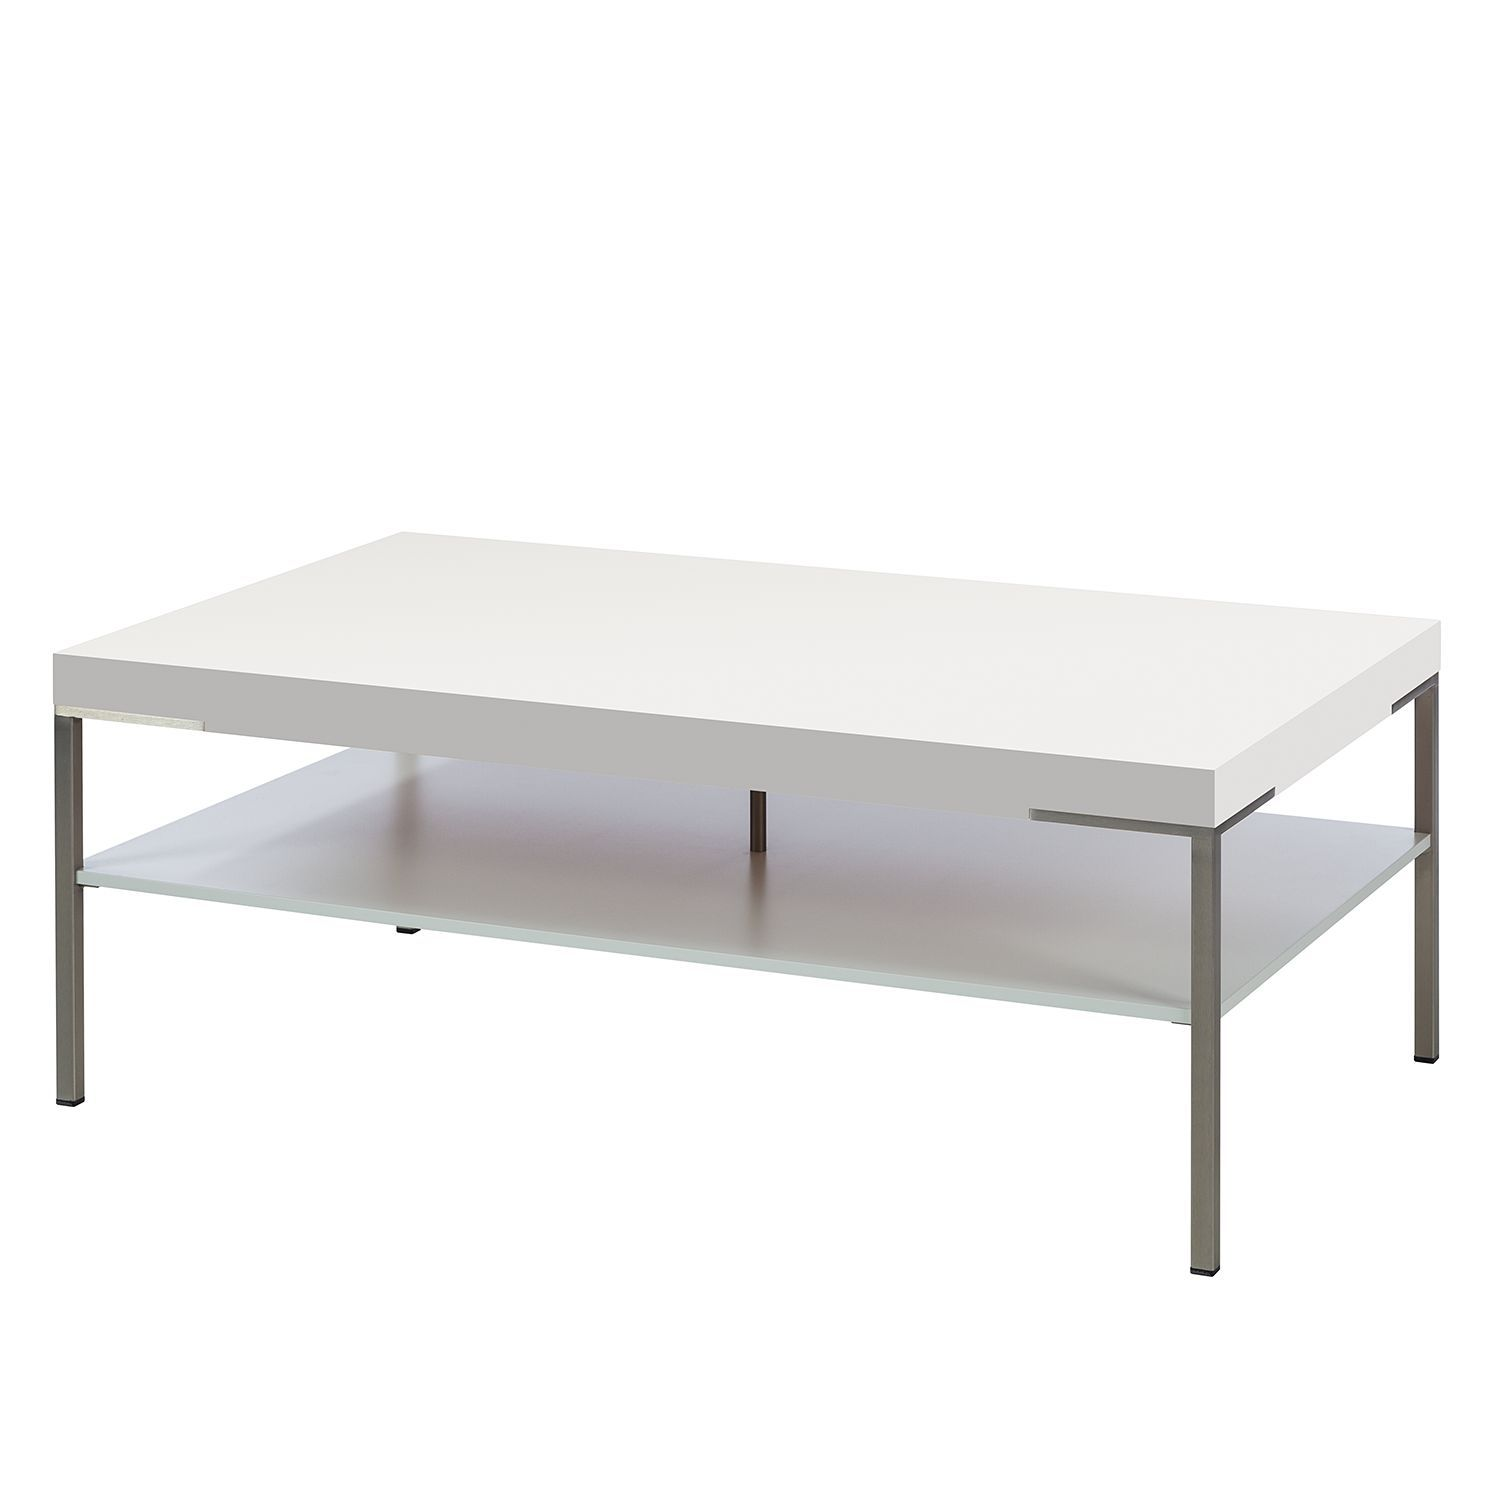 Roomify Couchtisch Domi Tables Basses Basses Tables Tables Basses Design Tables